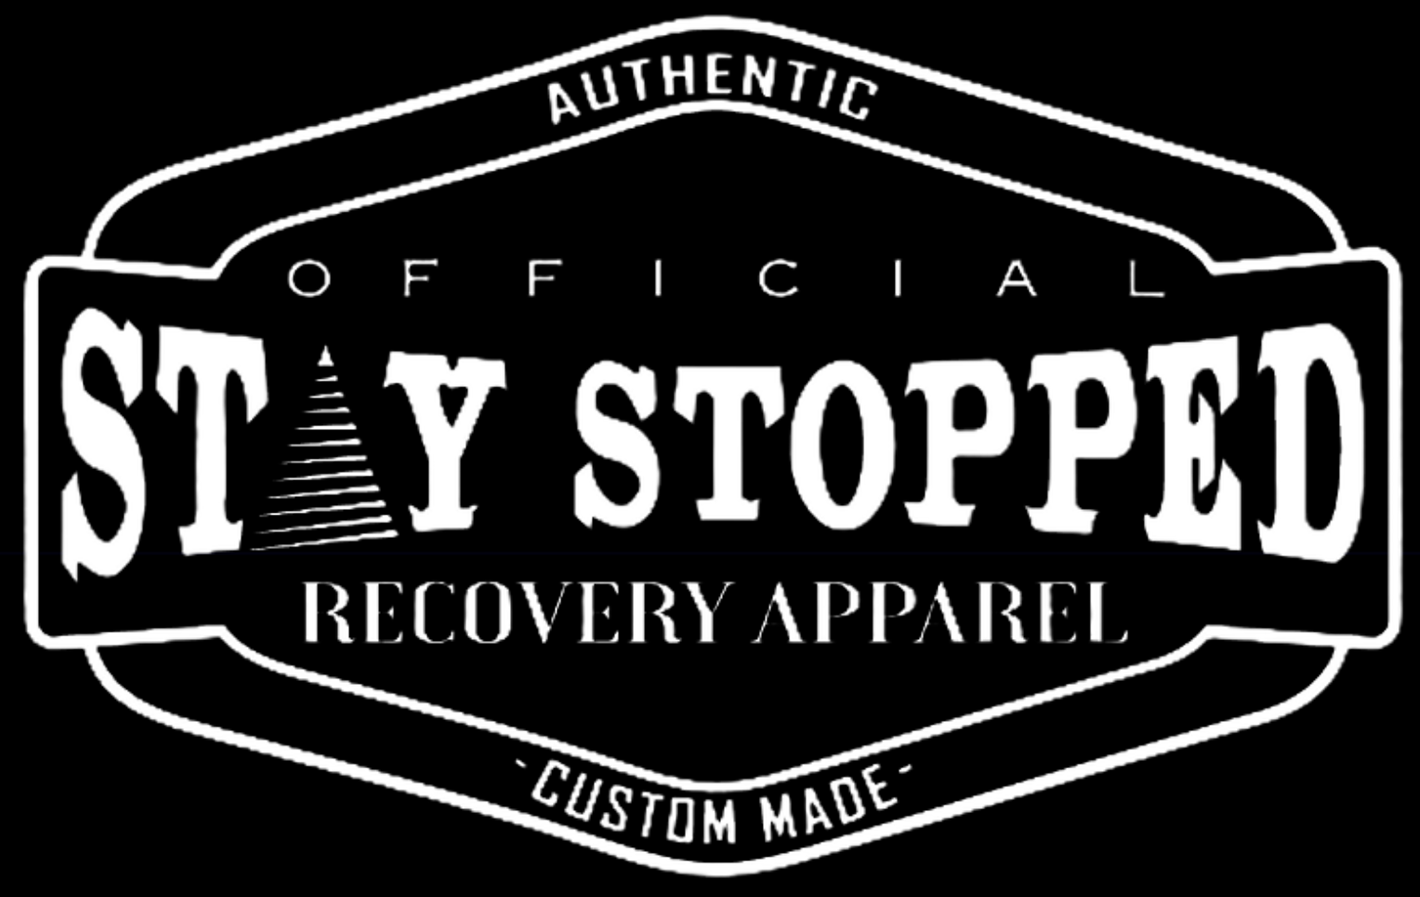 Stay Stopped Branded Apparel and Gifts